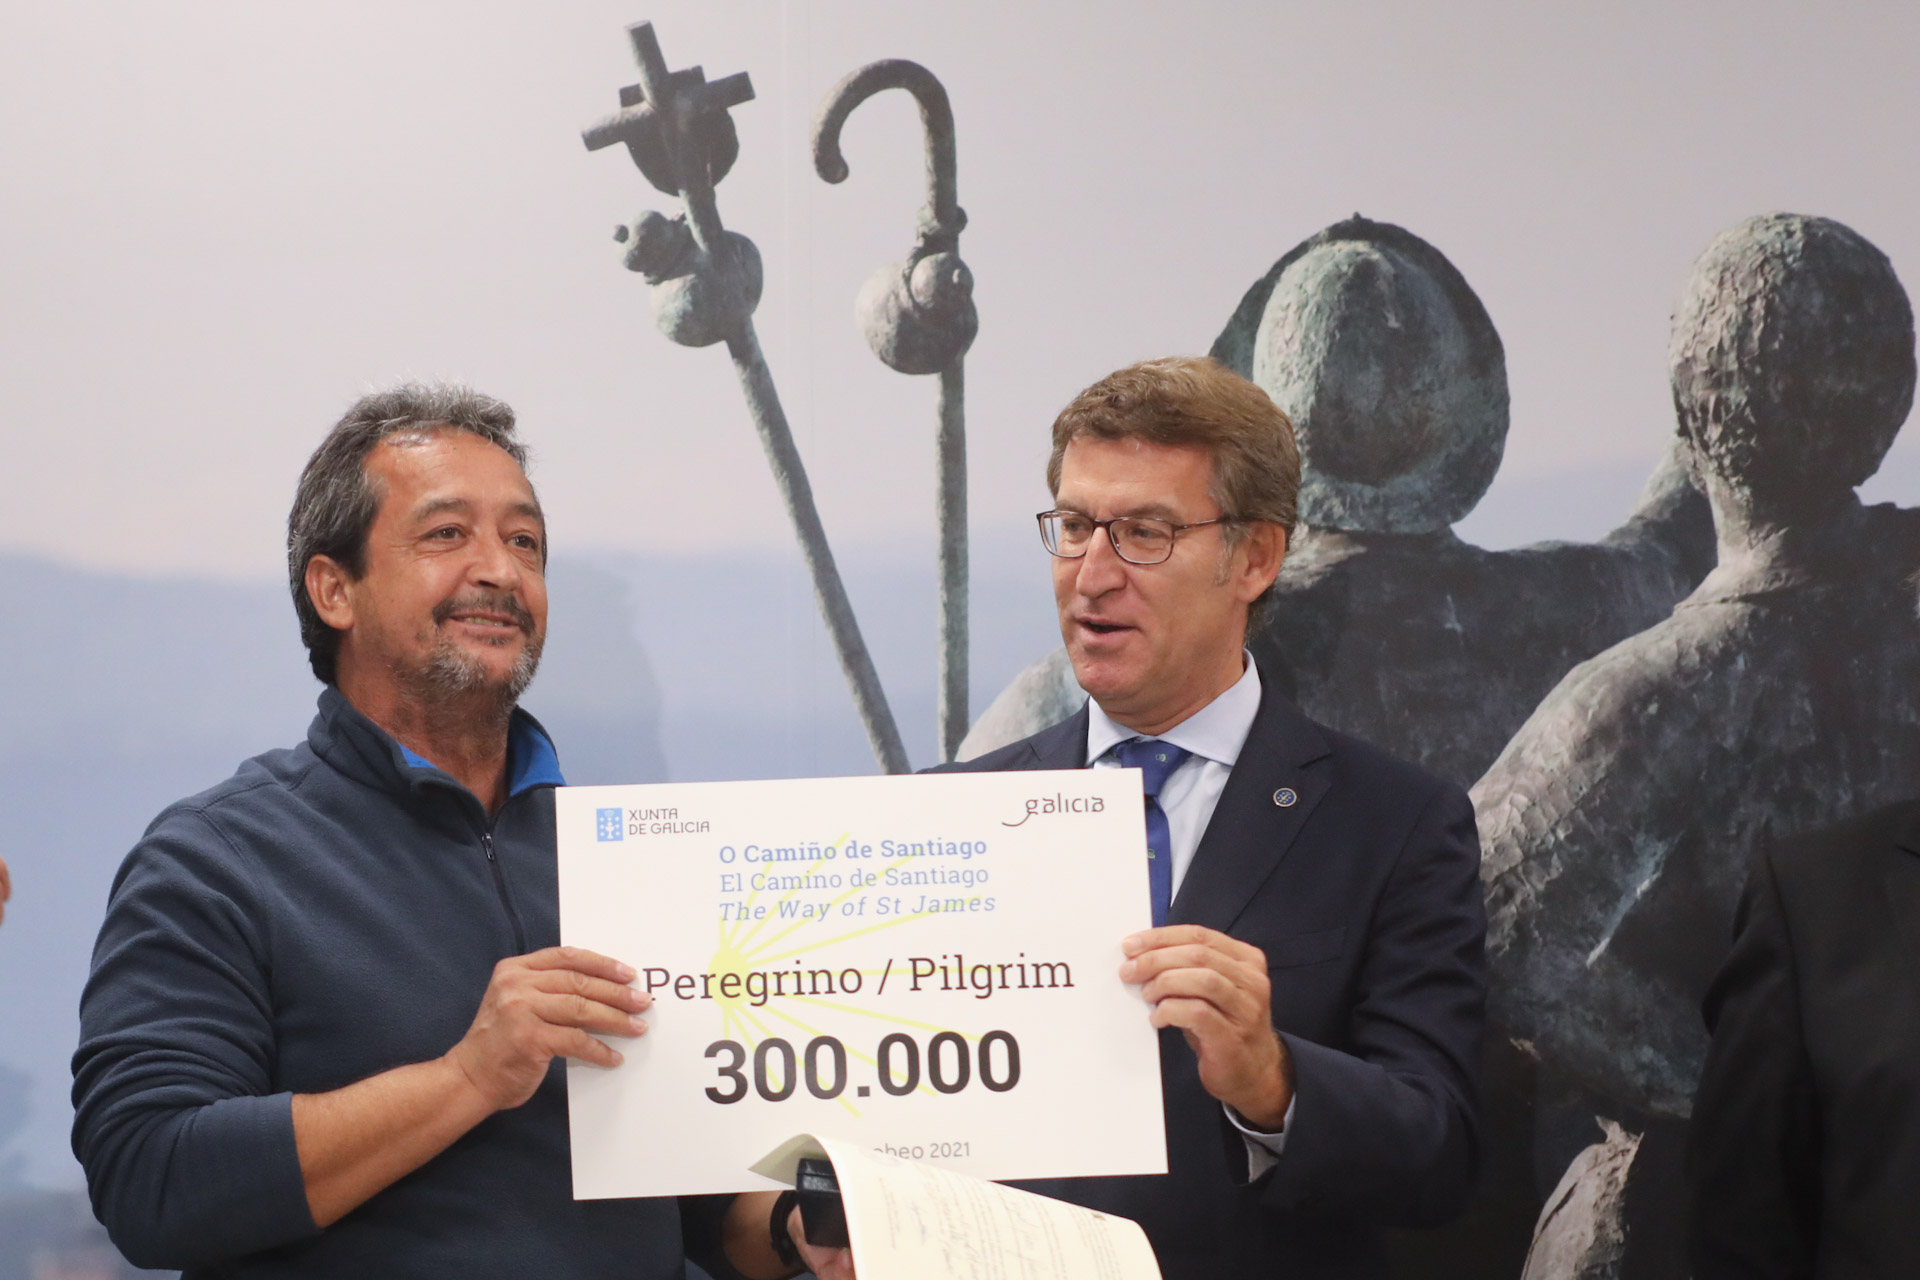 Galicia receives the pilgrim 300.000 with the forecast to close 2018 with a new record